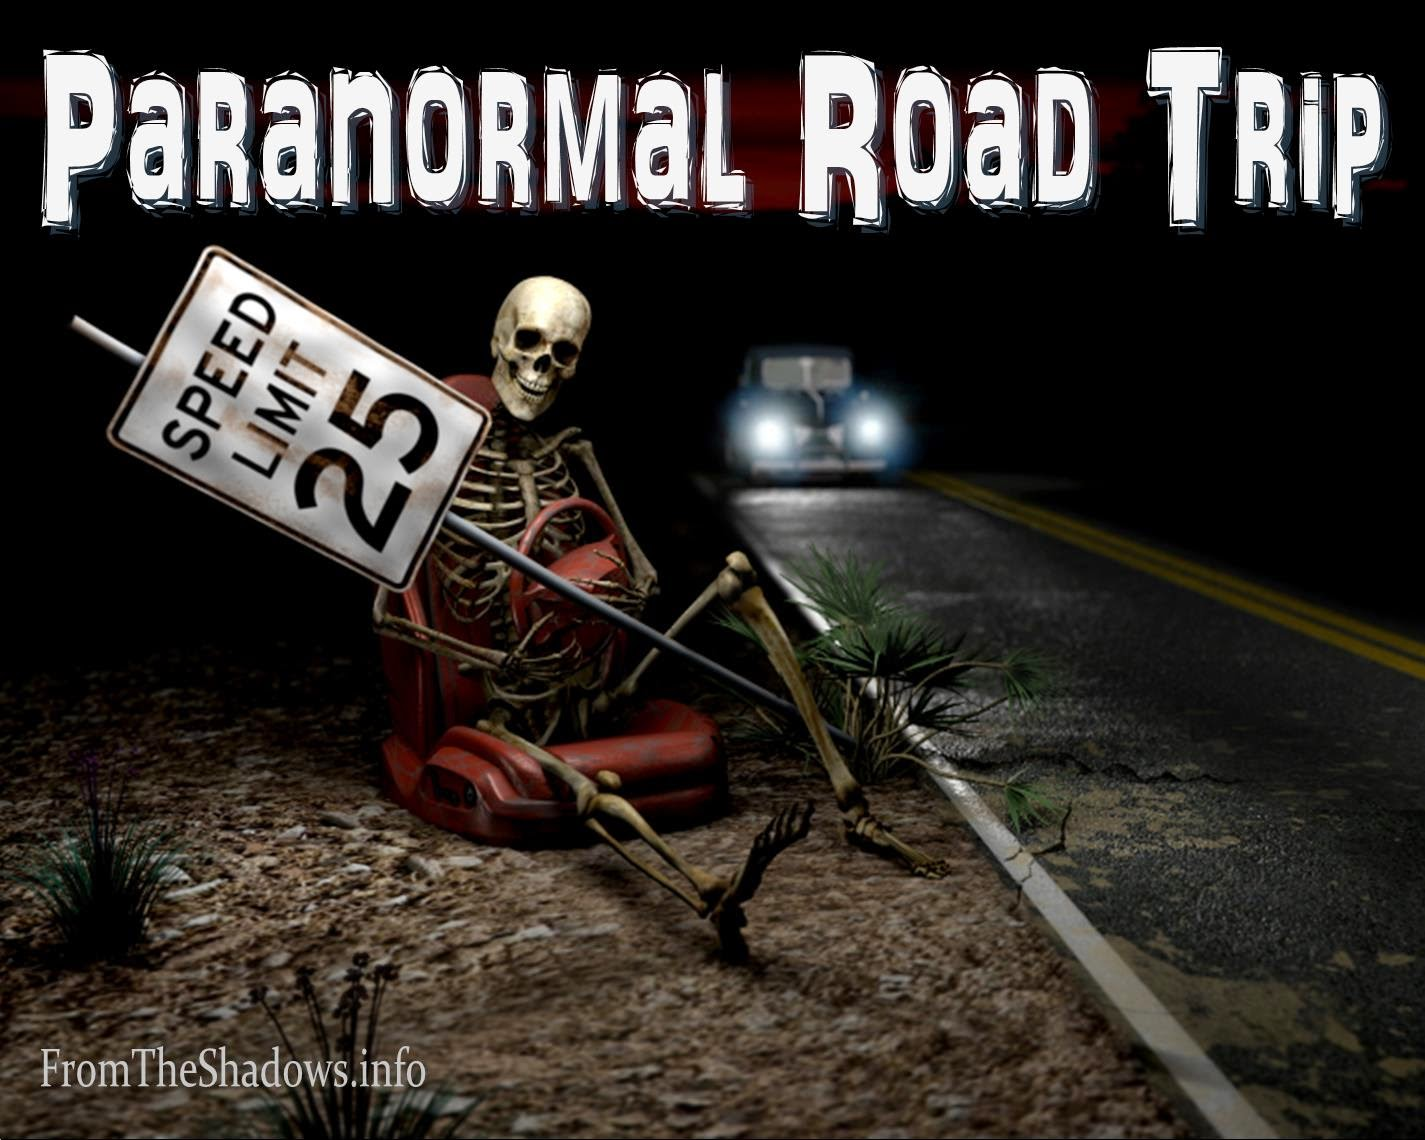 Paranormal Road Trip: Spooky Places in Twelve Acres, Colorado with Teri Harman